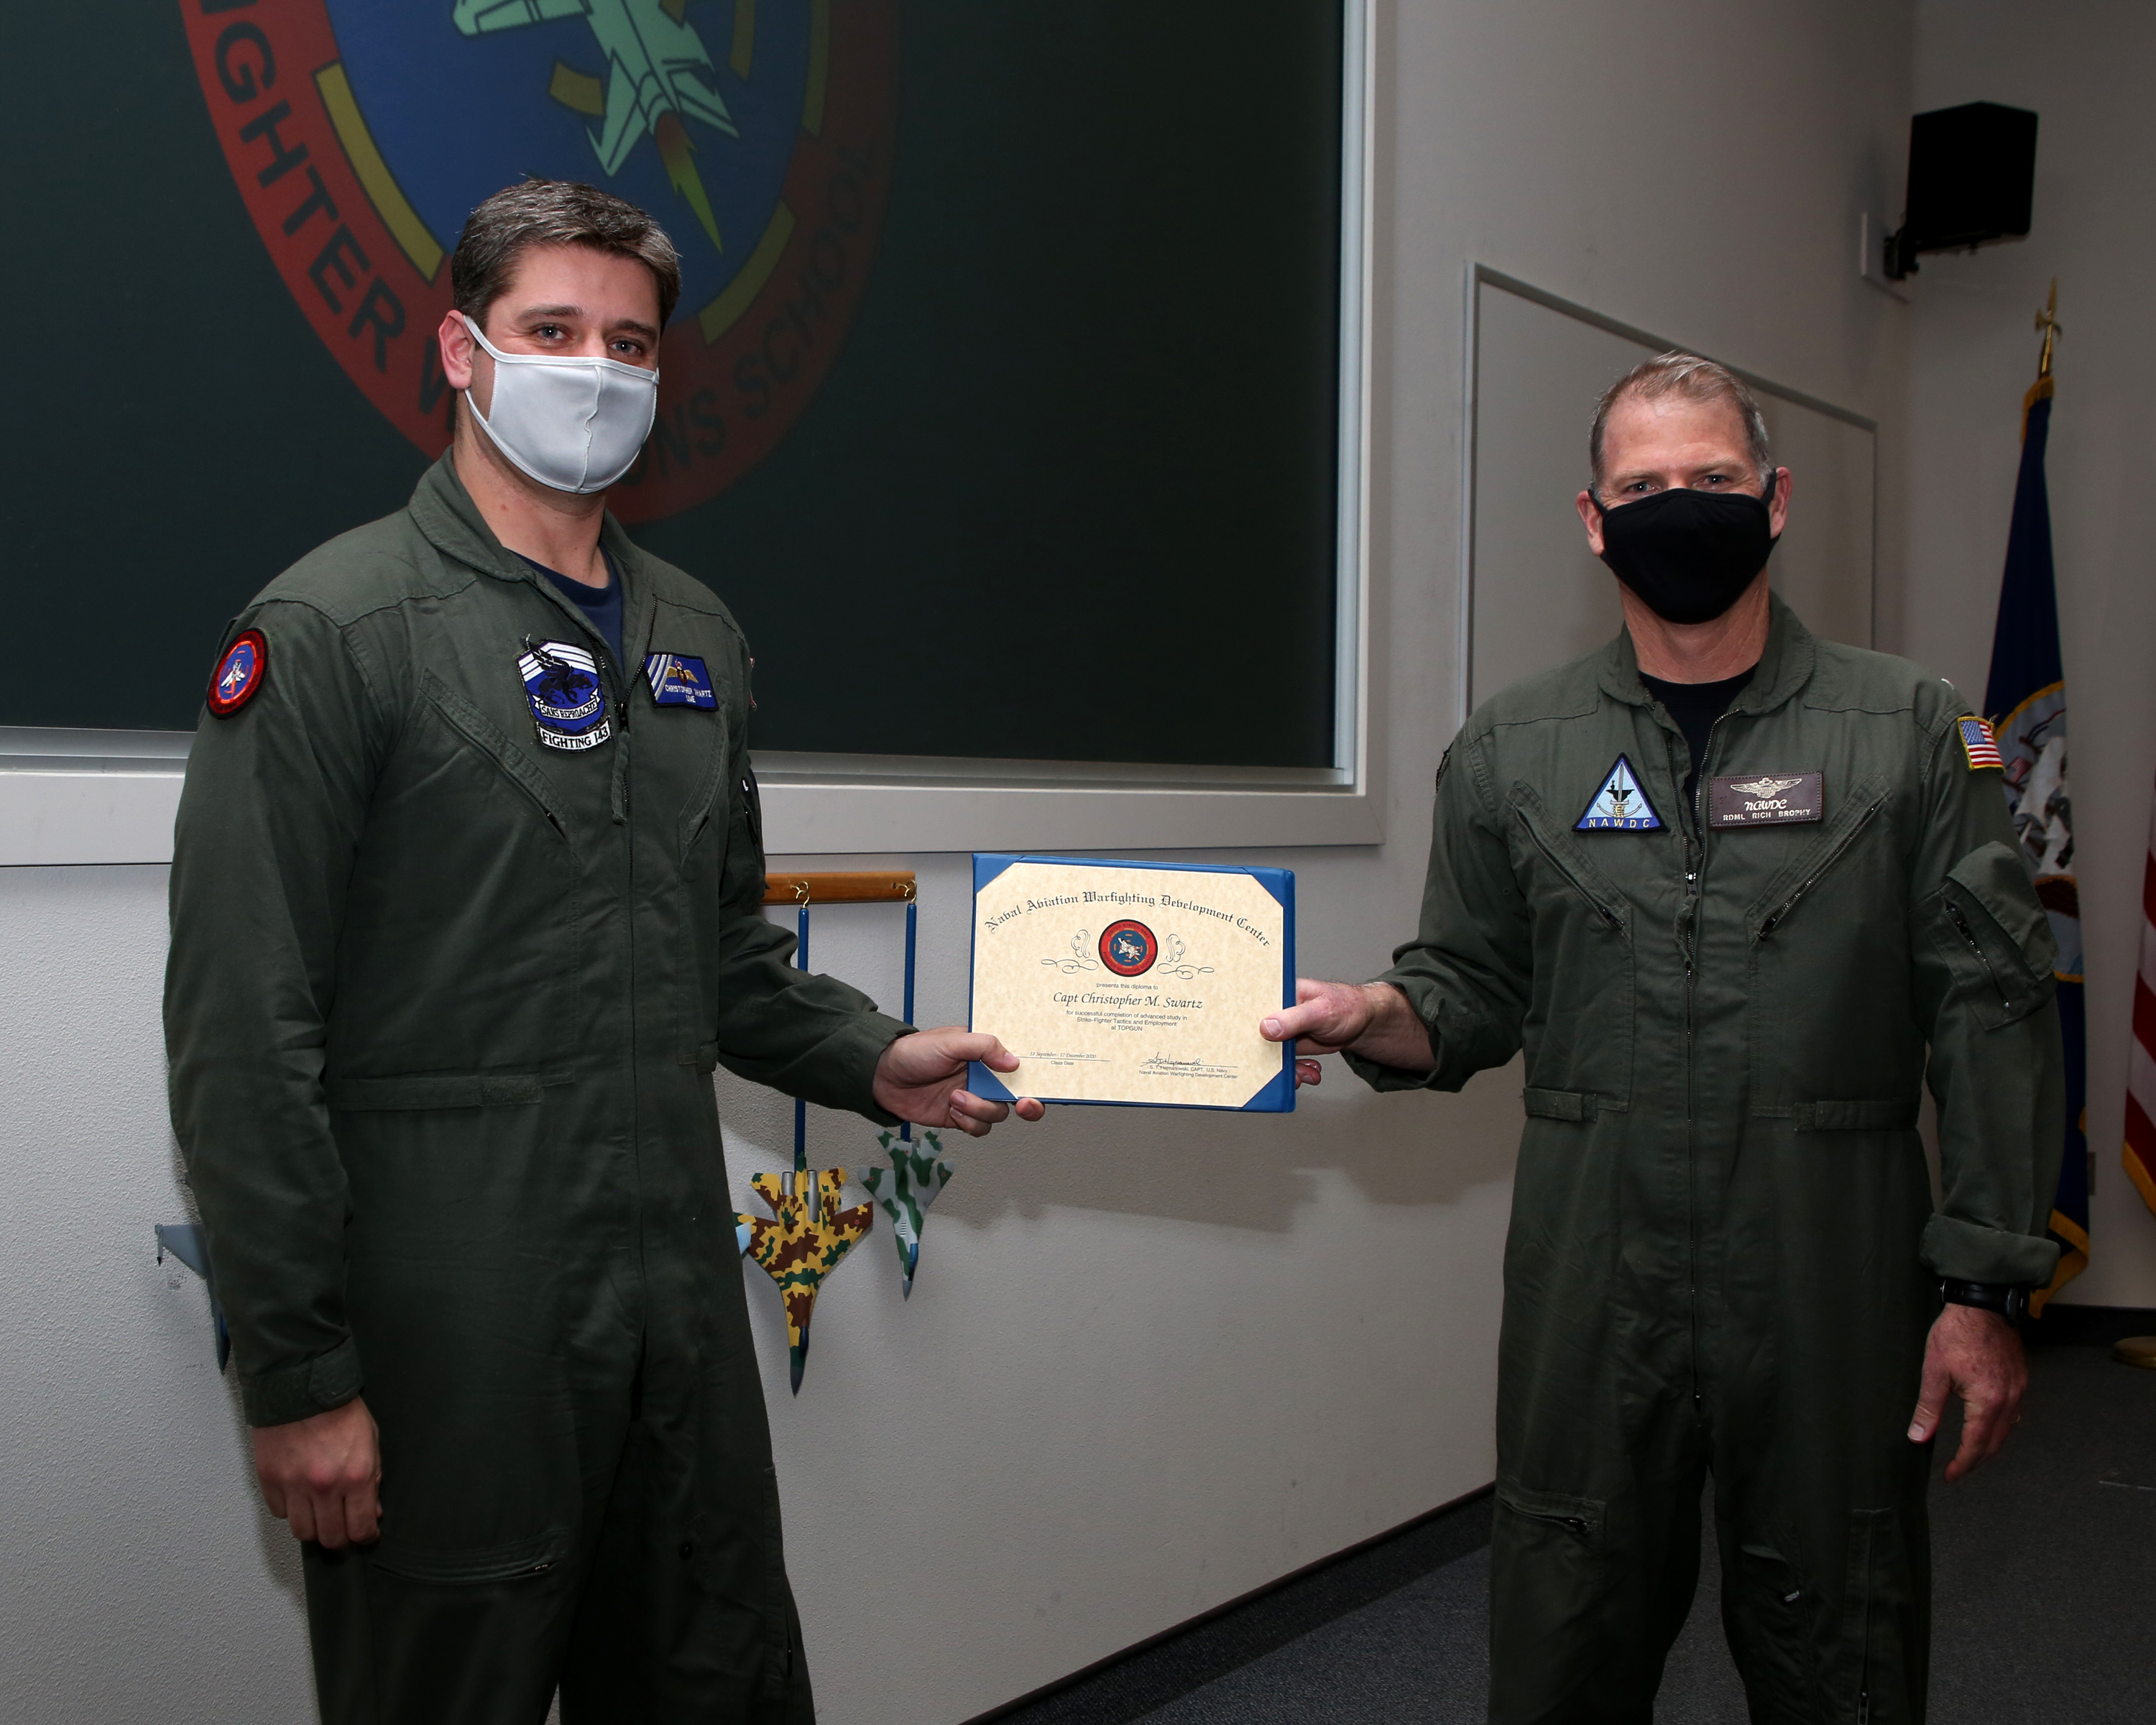 Two men wearing green flight suits and masks hold a certificate together.